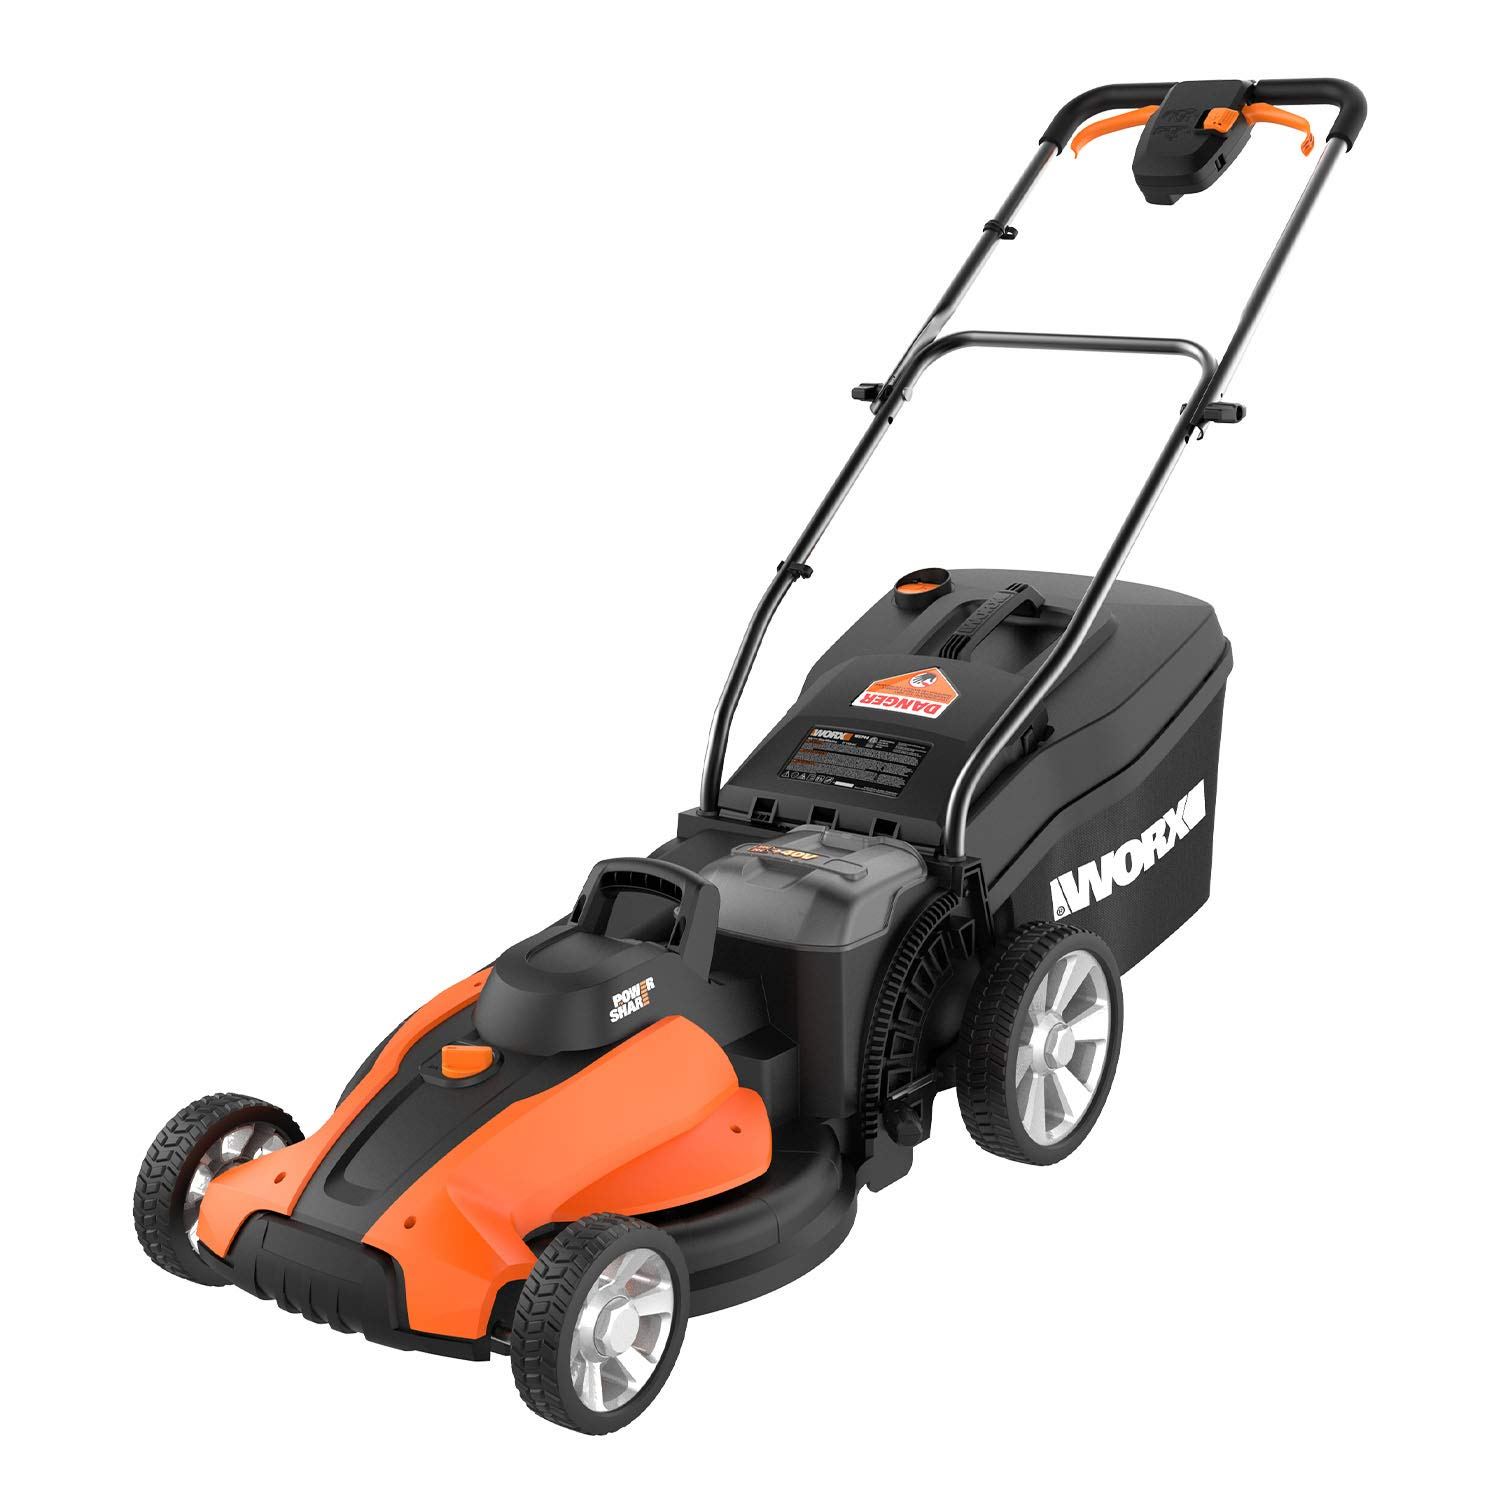 Worx WG744 17-inch 2x20V (4.0Ah) Cordless Lawn Mower, 2 Batteries and Charger Included